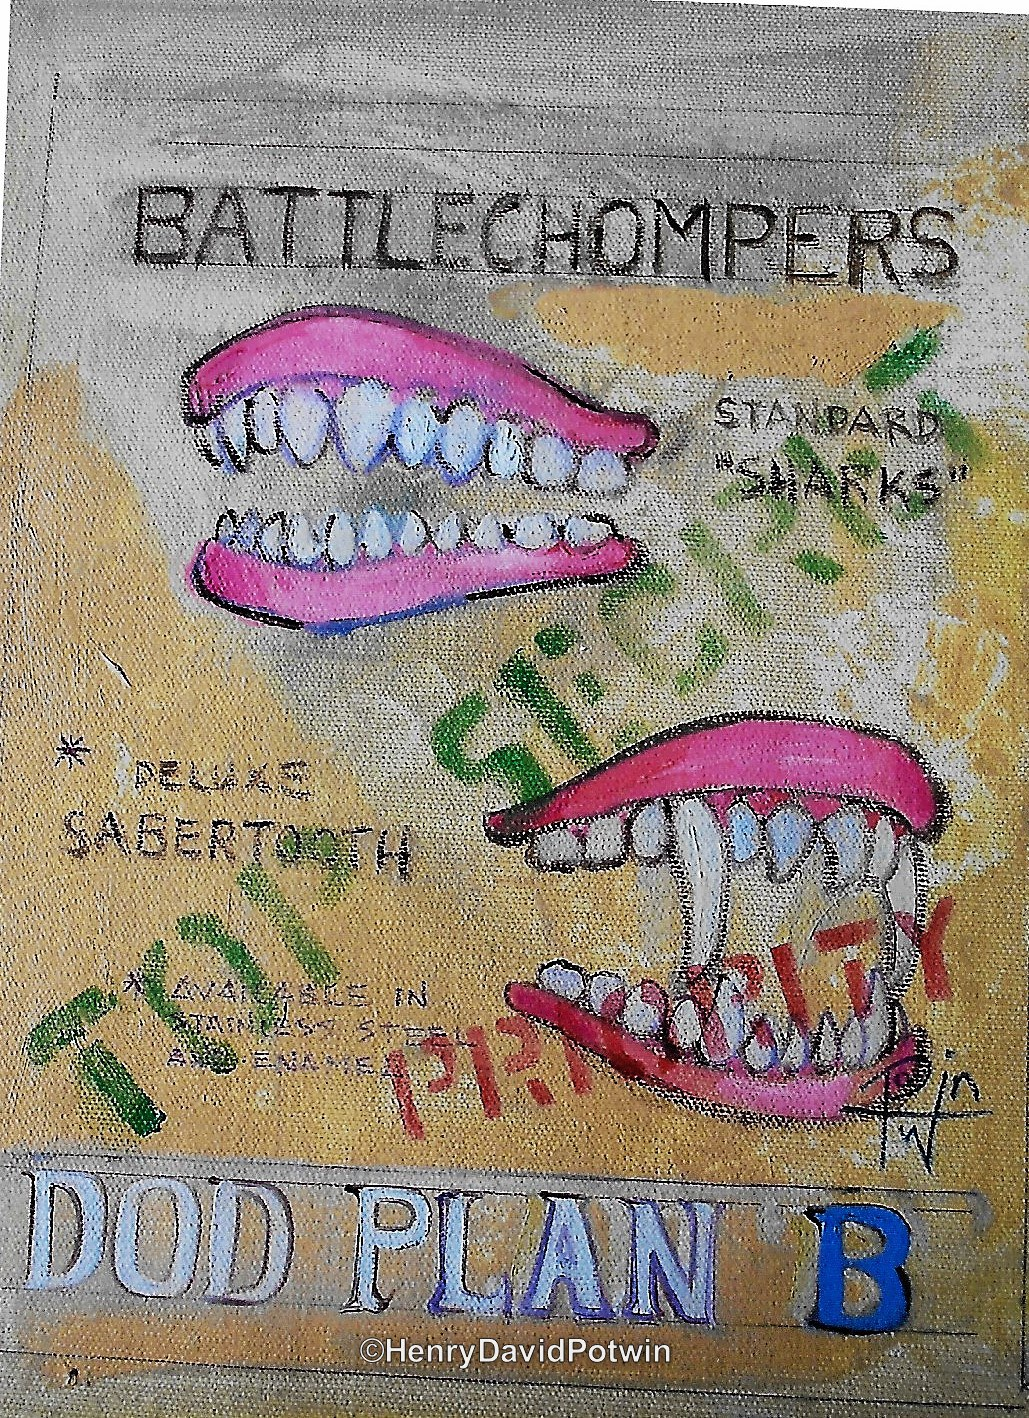 Battle Chompers  - 2011 8X11""